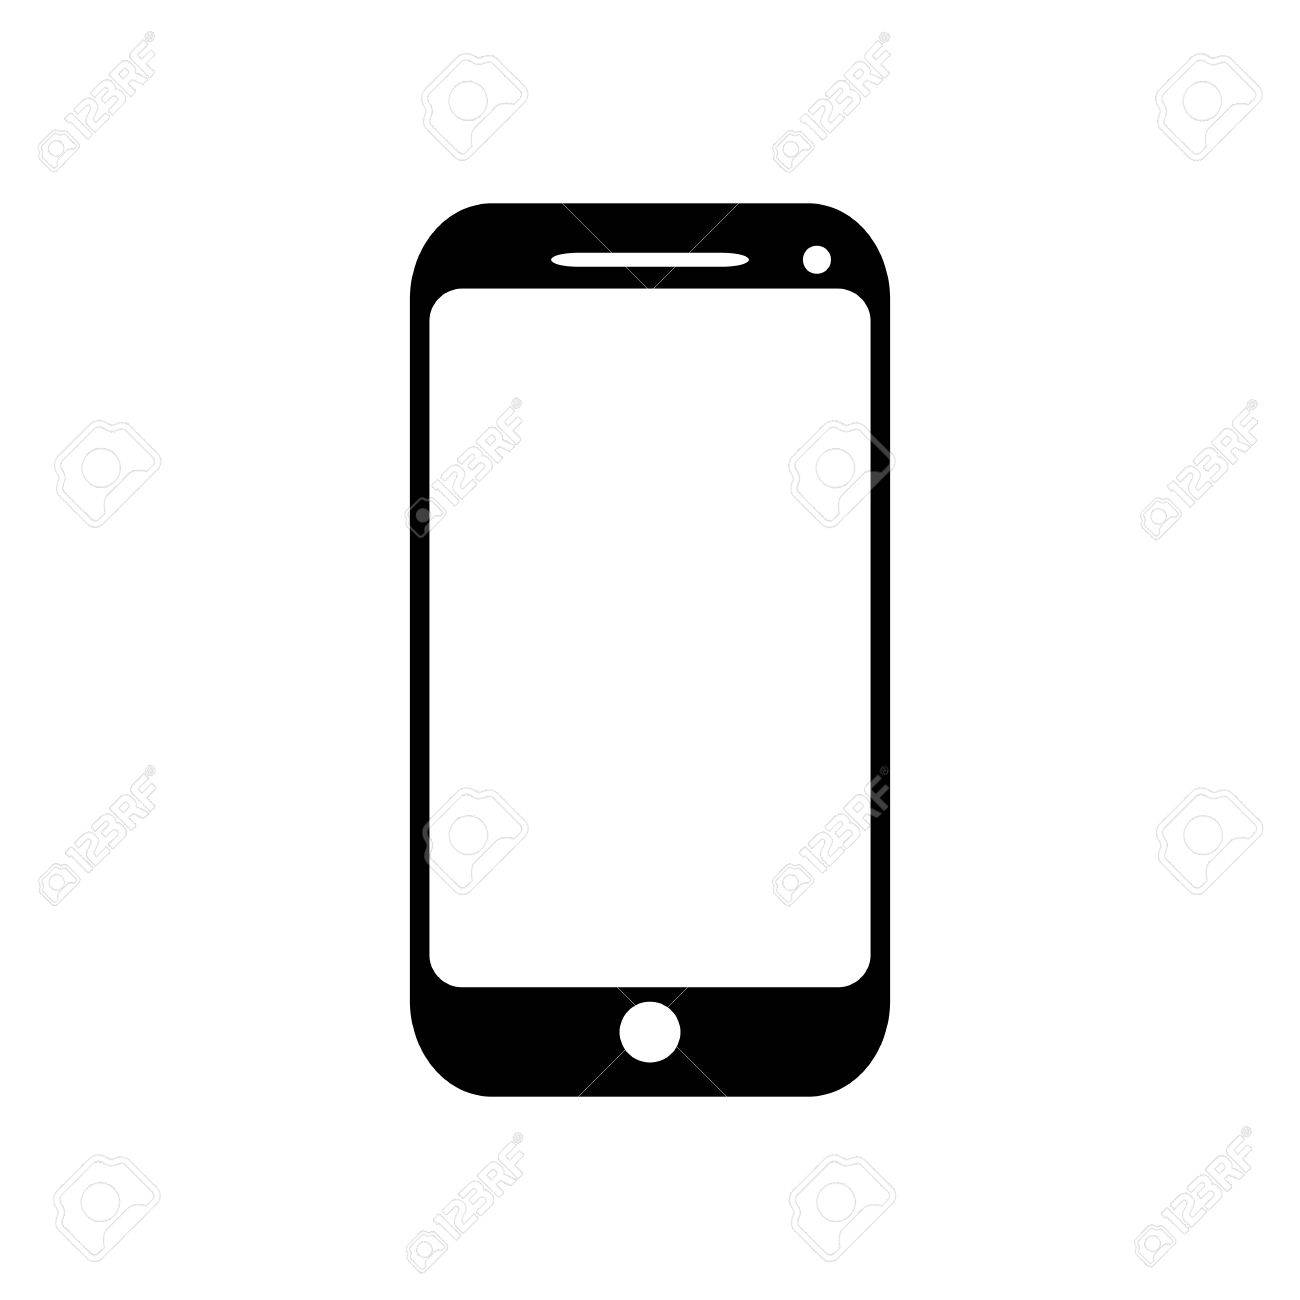 mobile phone icon - 32008848